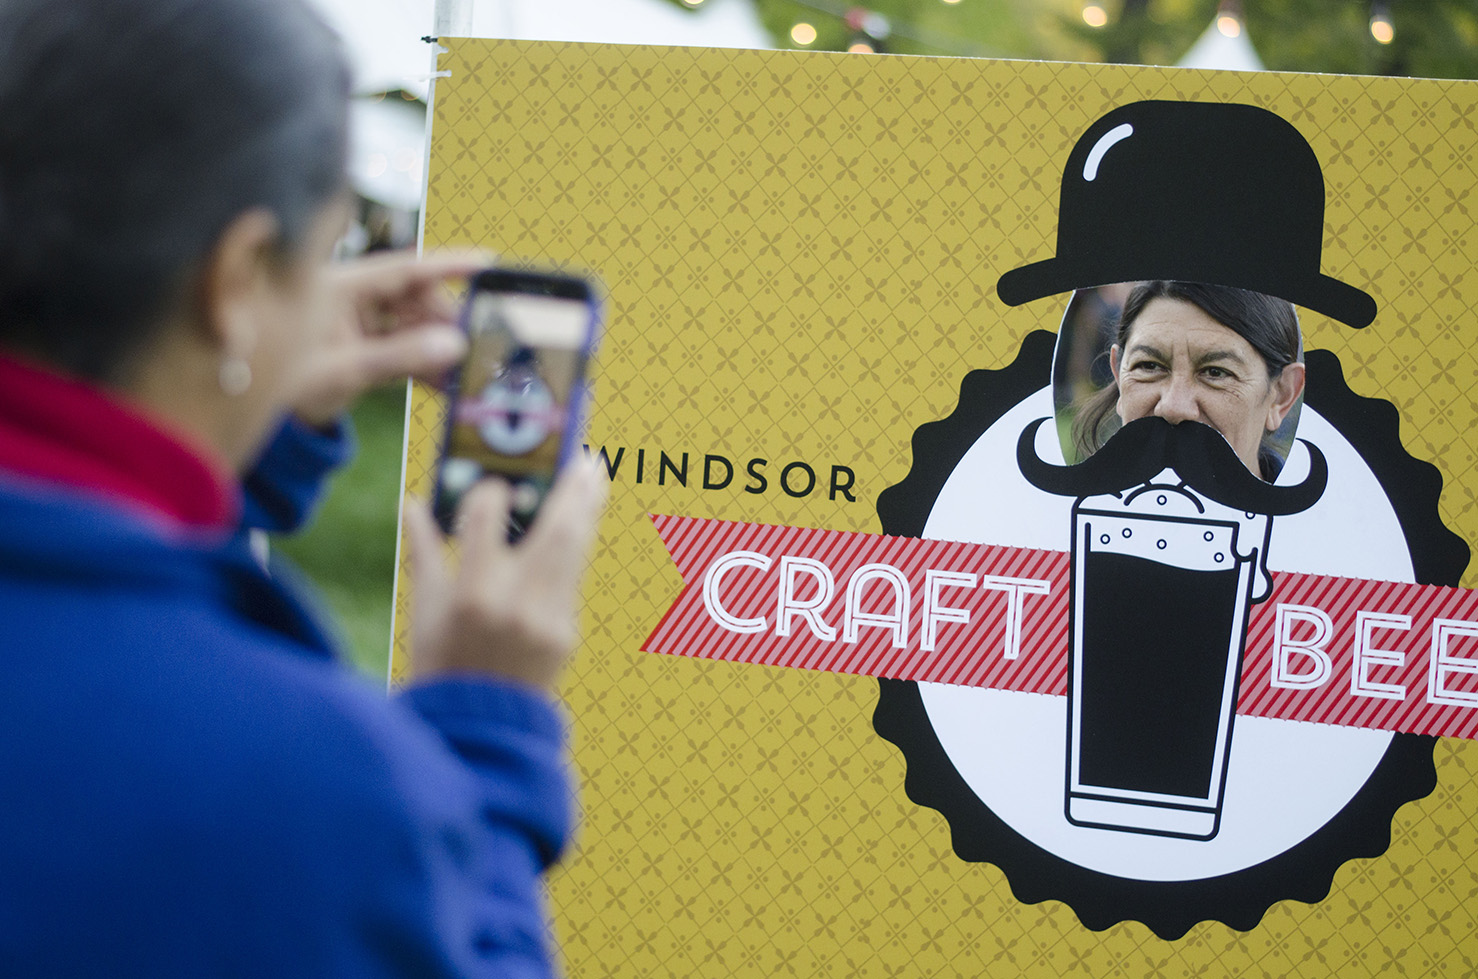 Having some fun at the Windsor Craft Beer Festival in Windsor, Ontario.